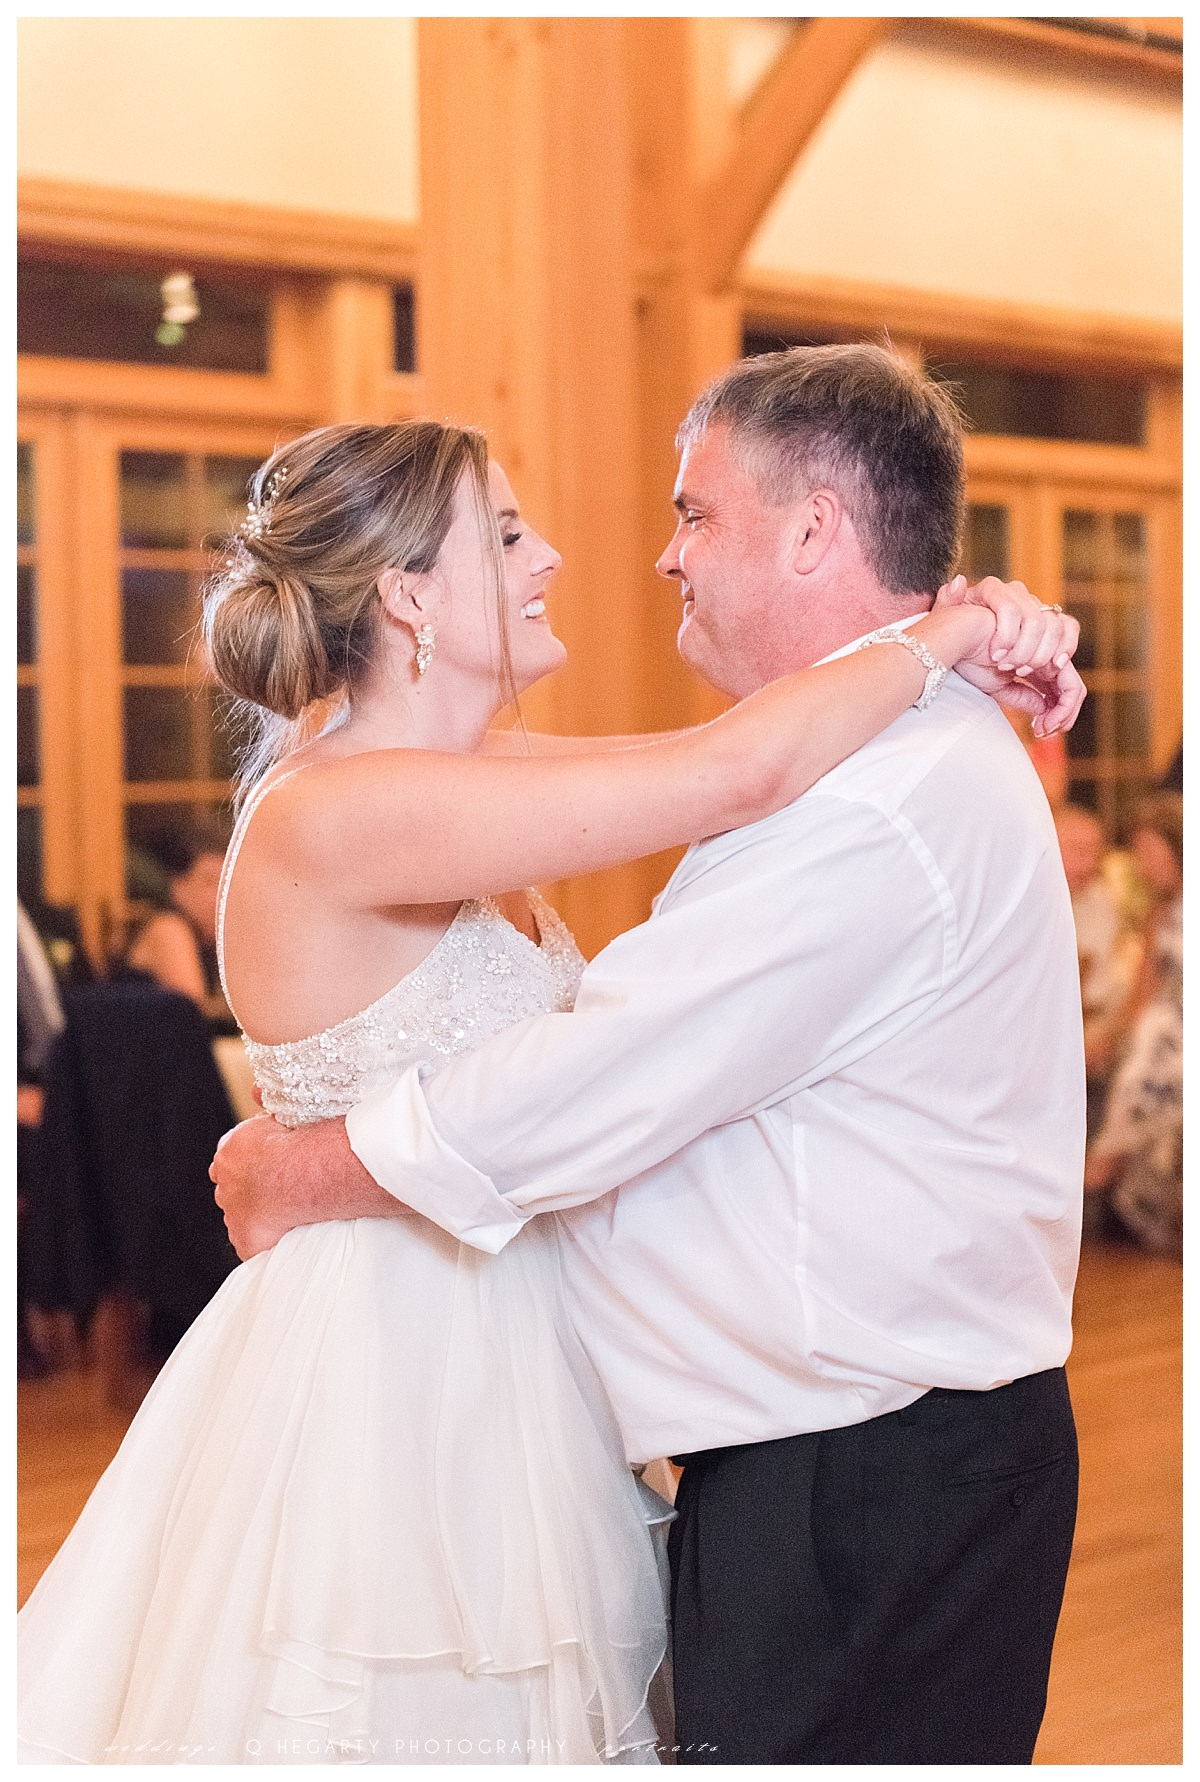 father and daughter dance photos at reception Q Hegarty Photography barn weddings in ME